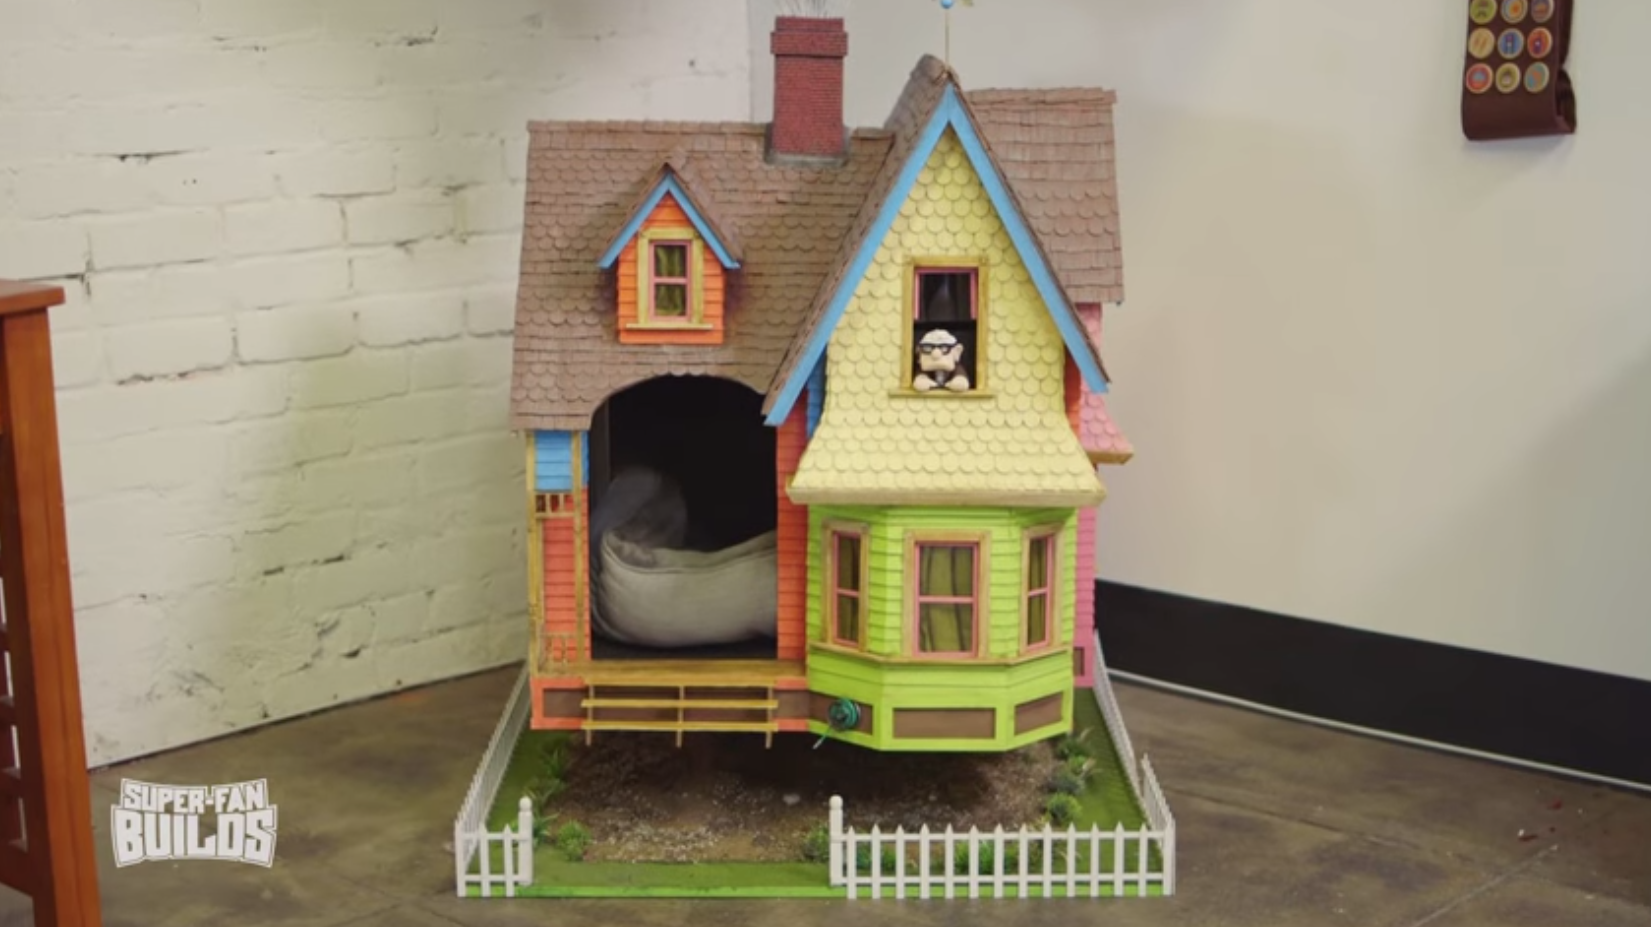 Doghouse from Up replica